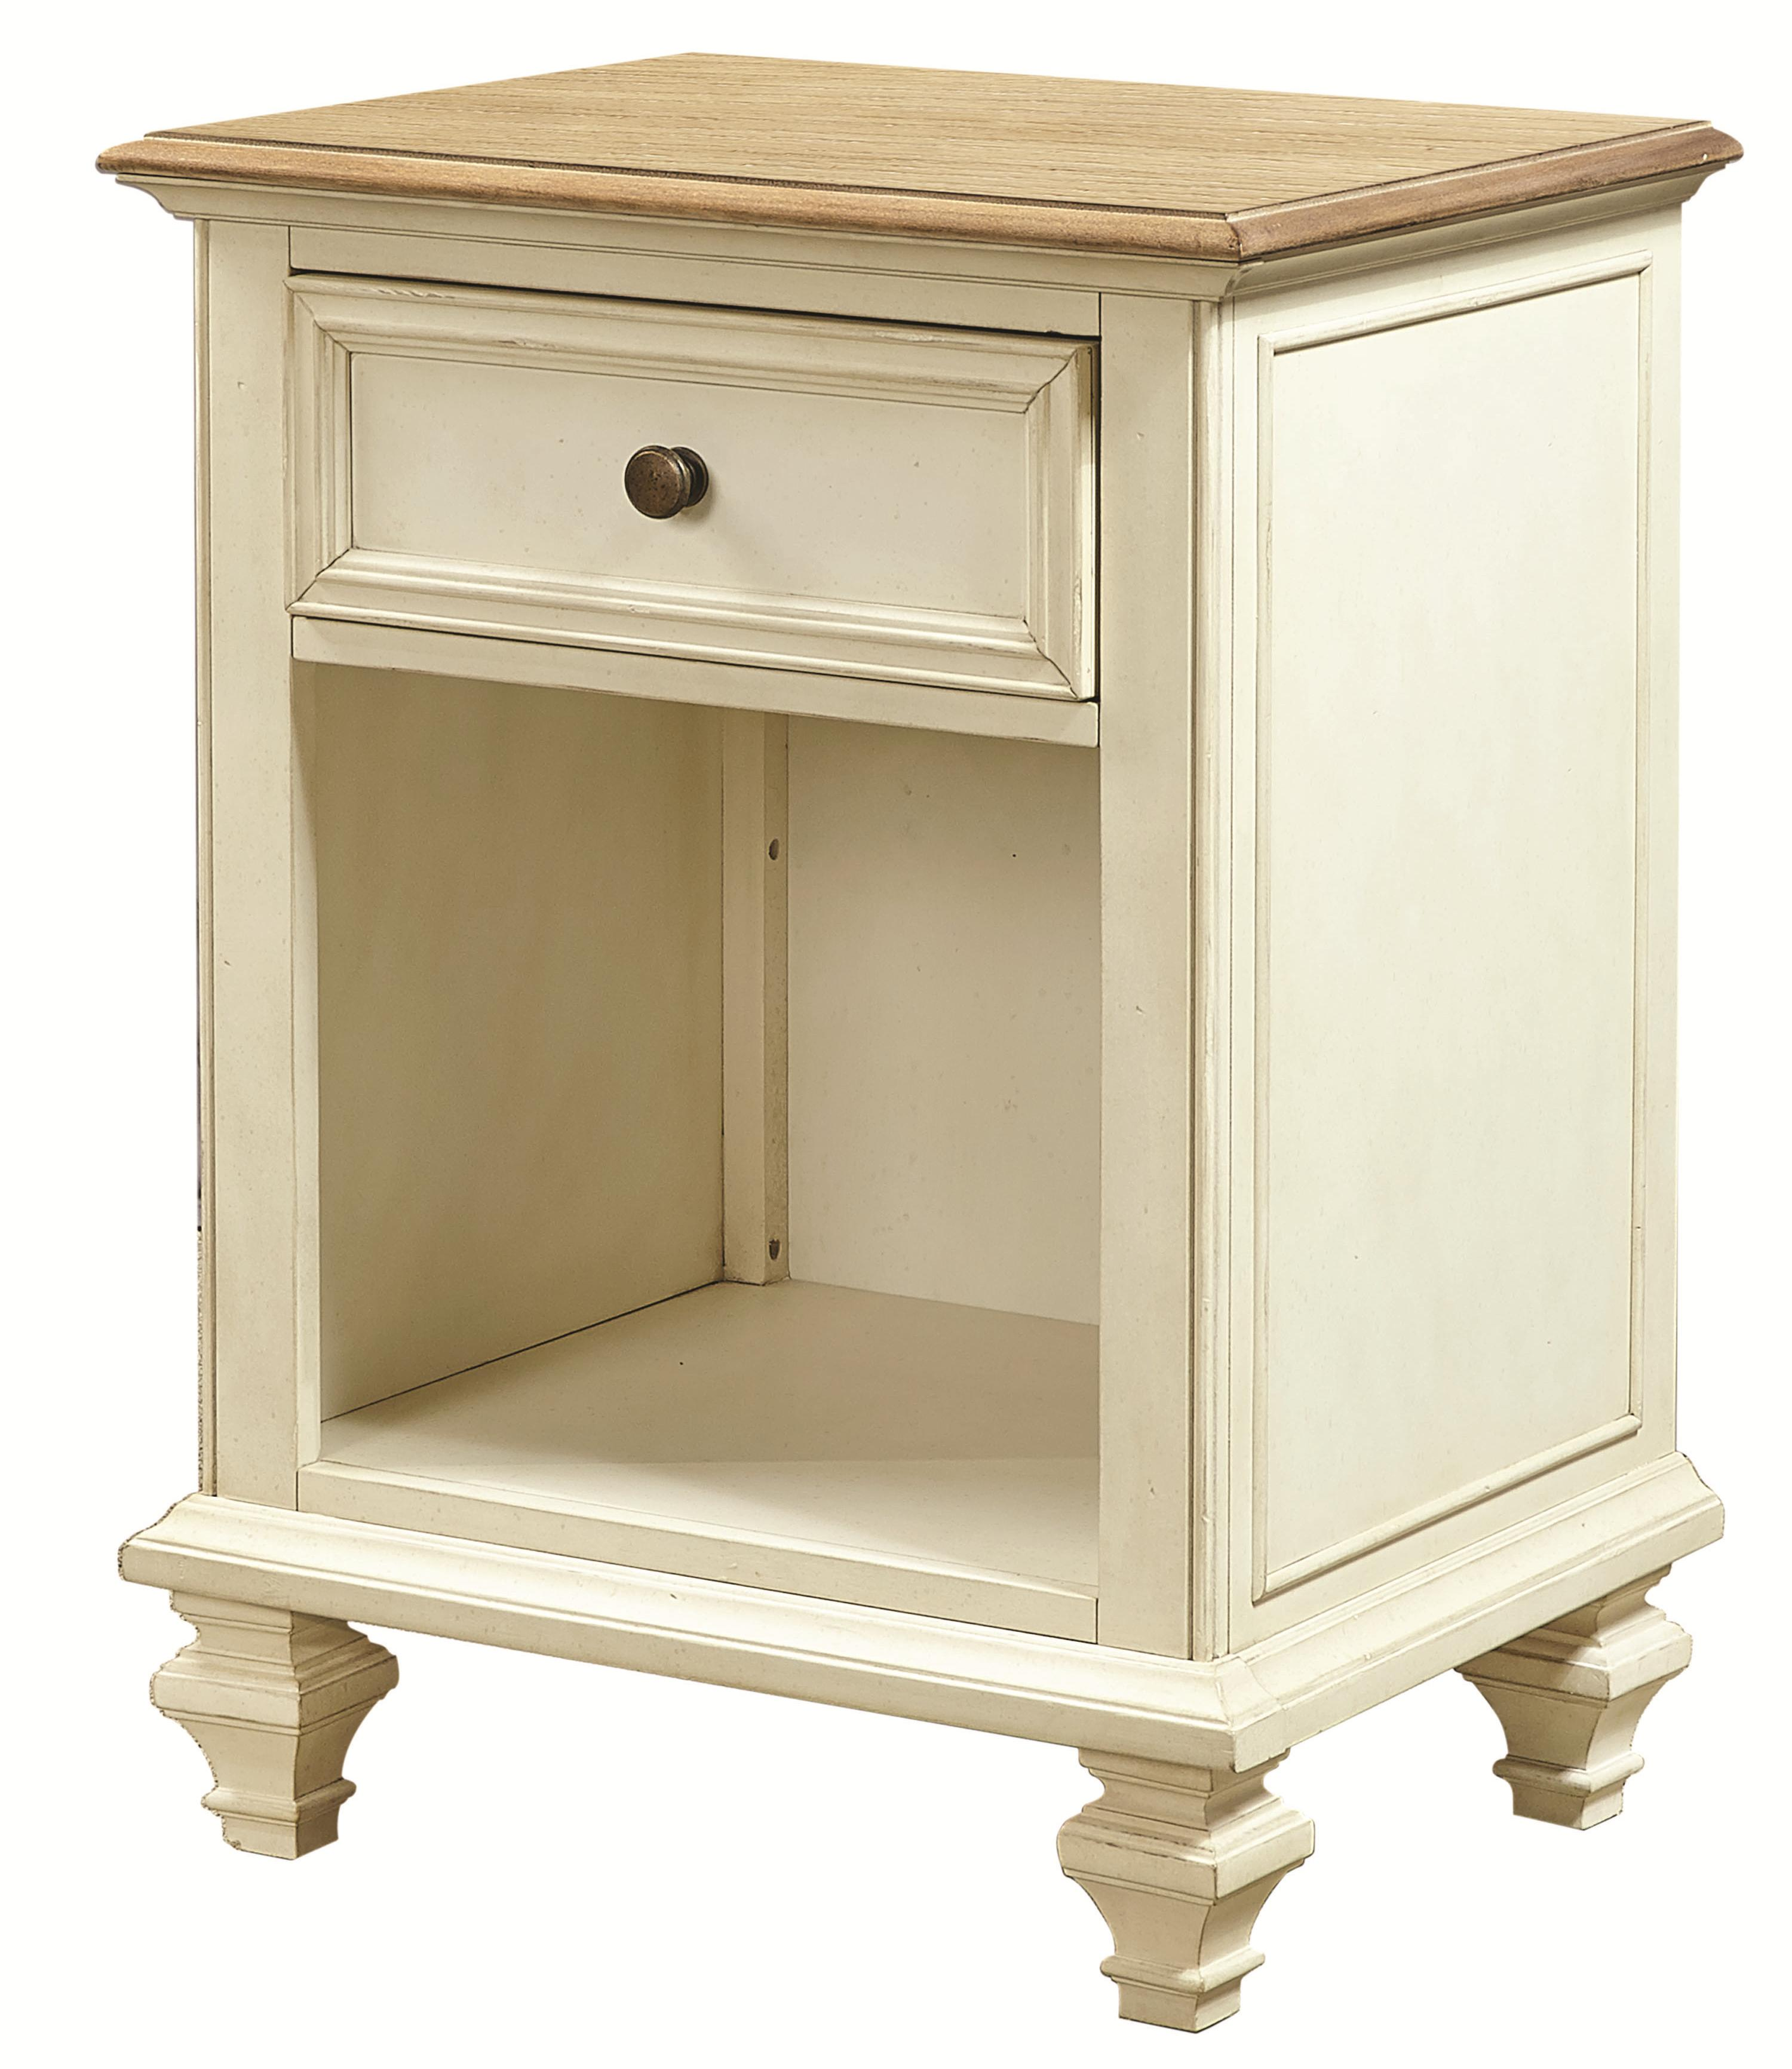 Aspenhome Cottonwood Night Stand - Item Number: I67-451